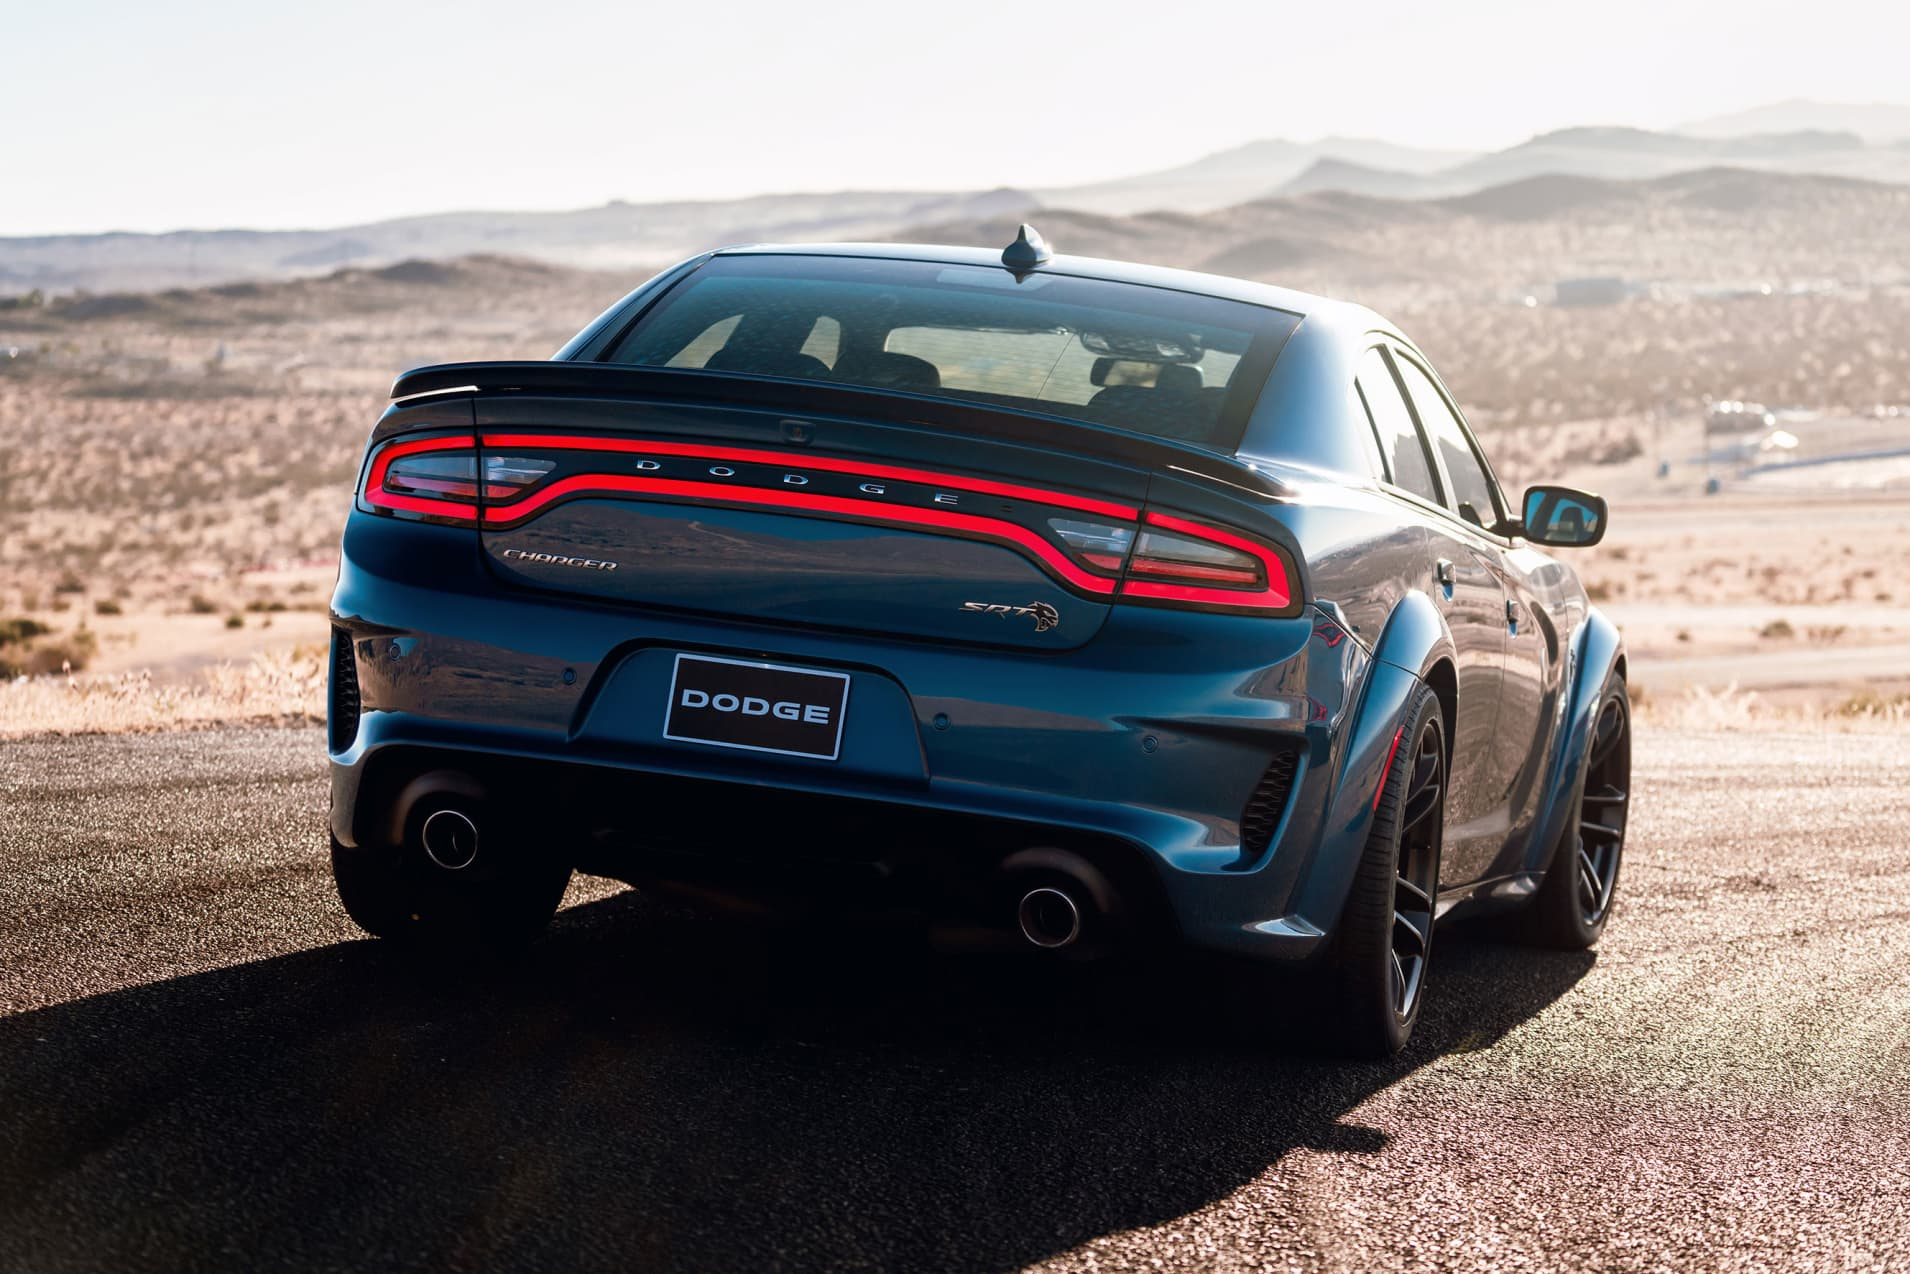 Dodge Launches The 2020 Charger Srt Hellcat The World S